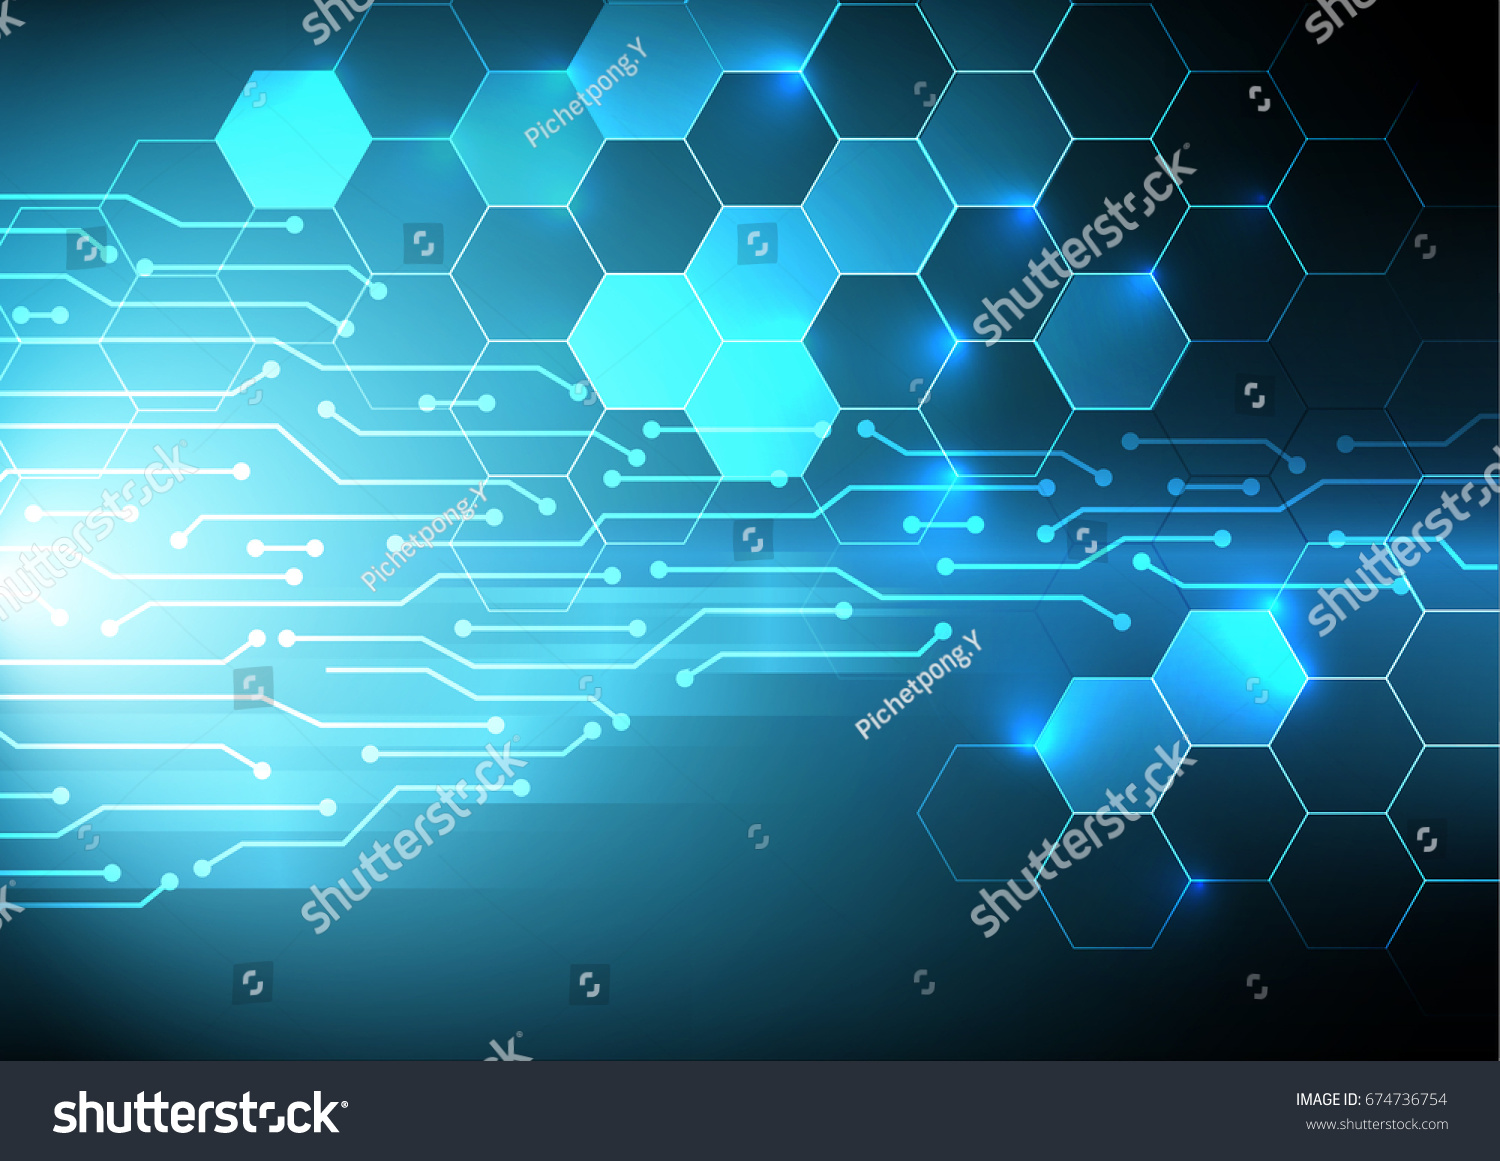 Digital Electric Circuit Abstract Background Blue Stock Vector ...